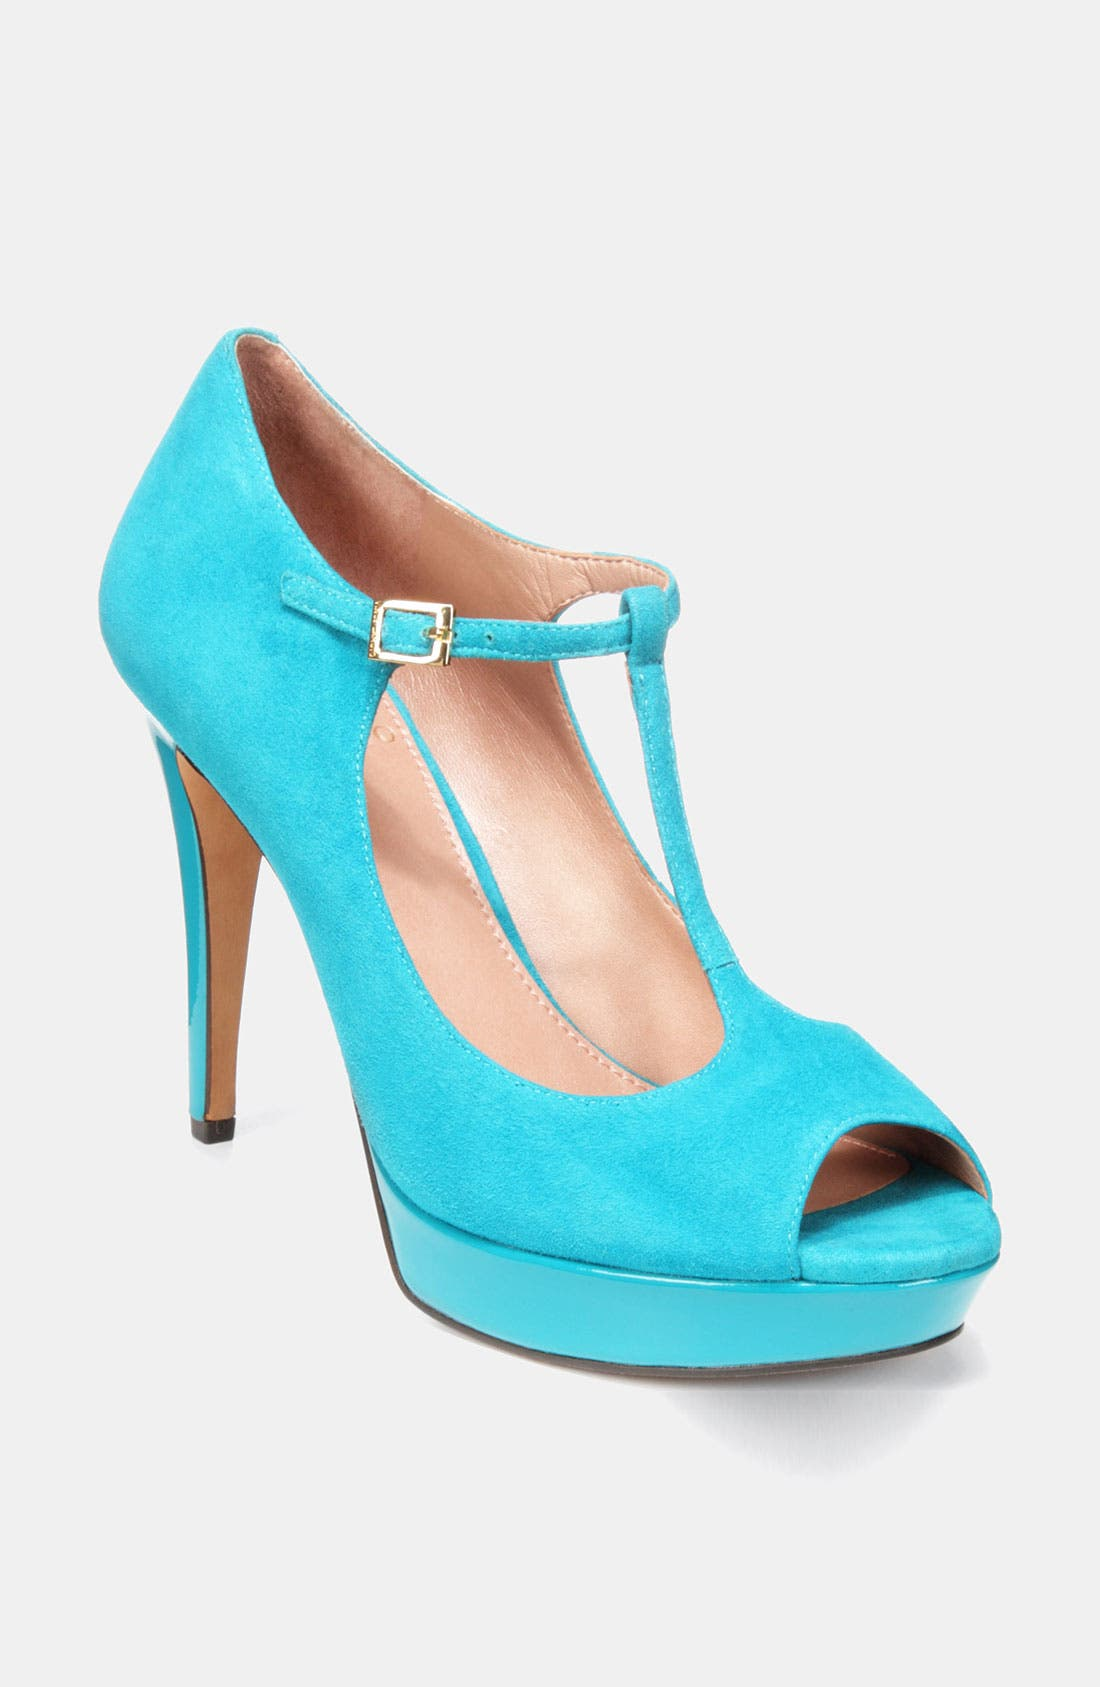 Alternate Image 1 Selected - Vince Camuto 'Ryhson' Pump